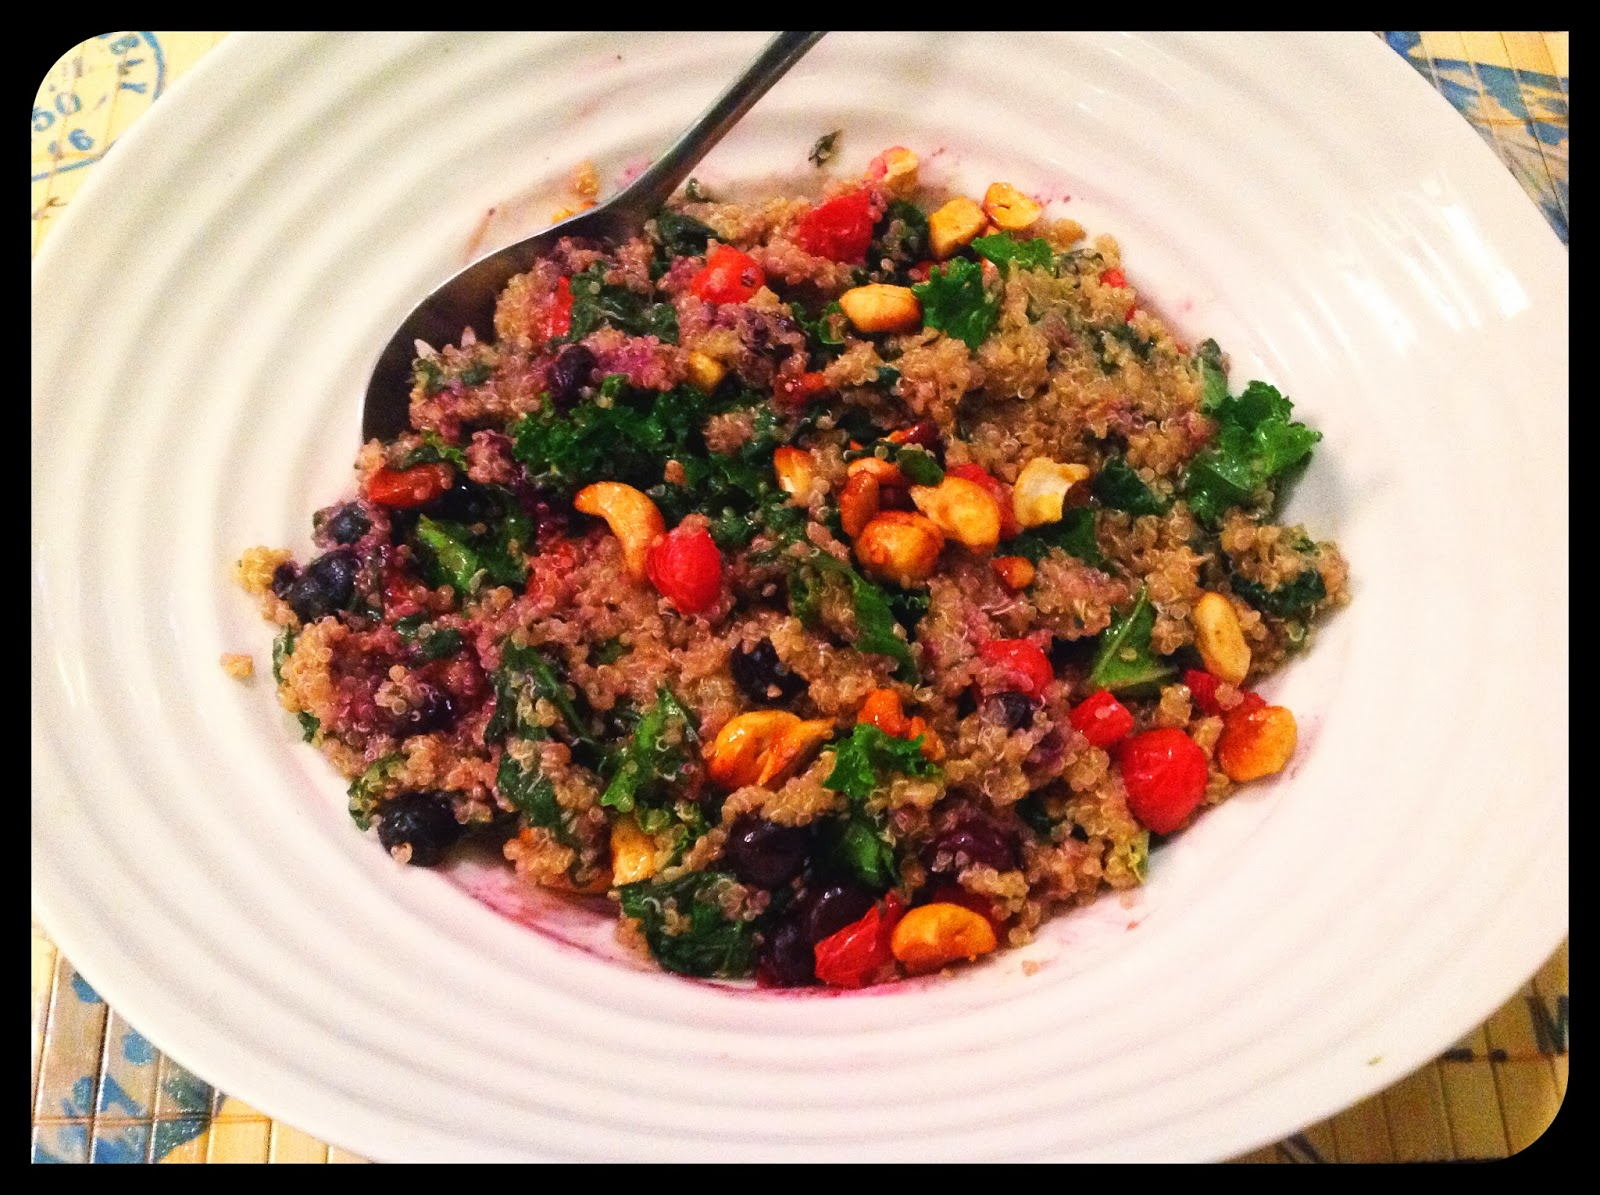 Kale Salad with Quinoa, Tangerines and Roasted Almonds recipes